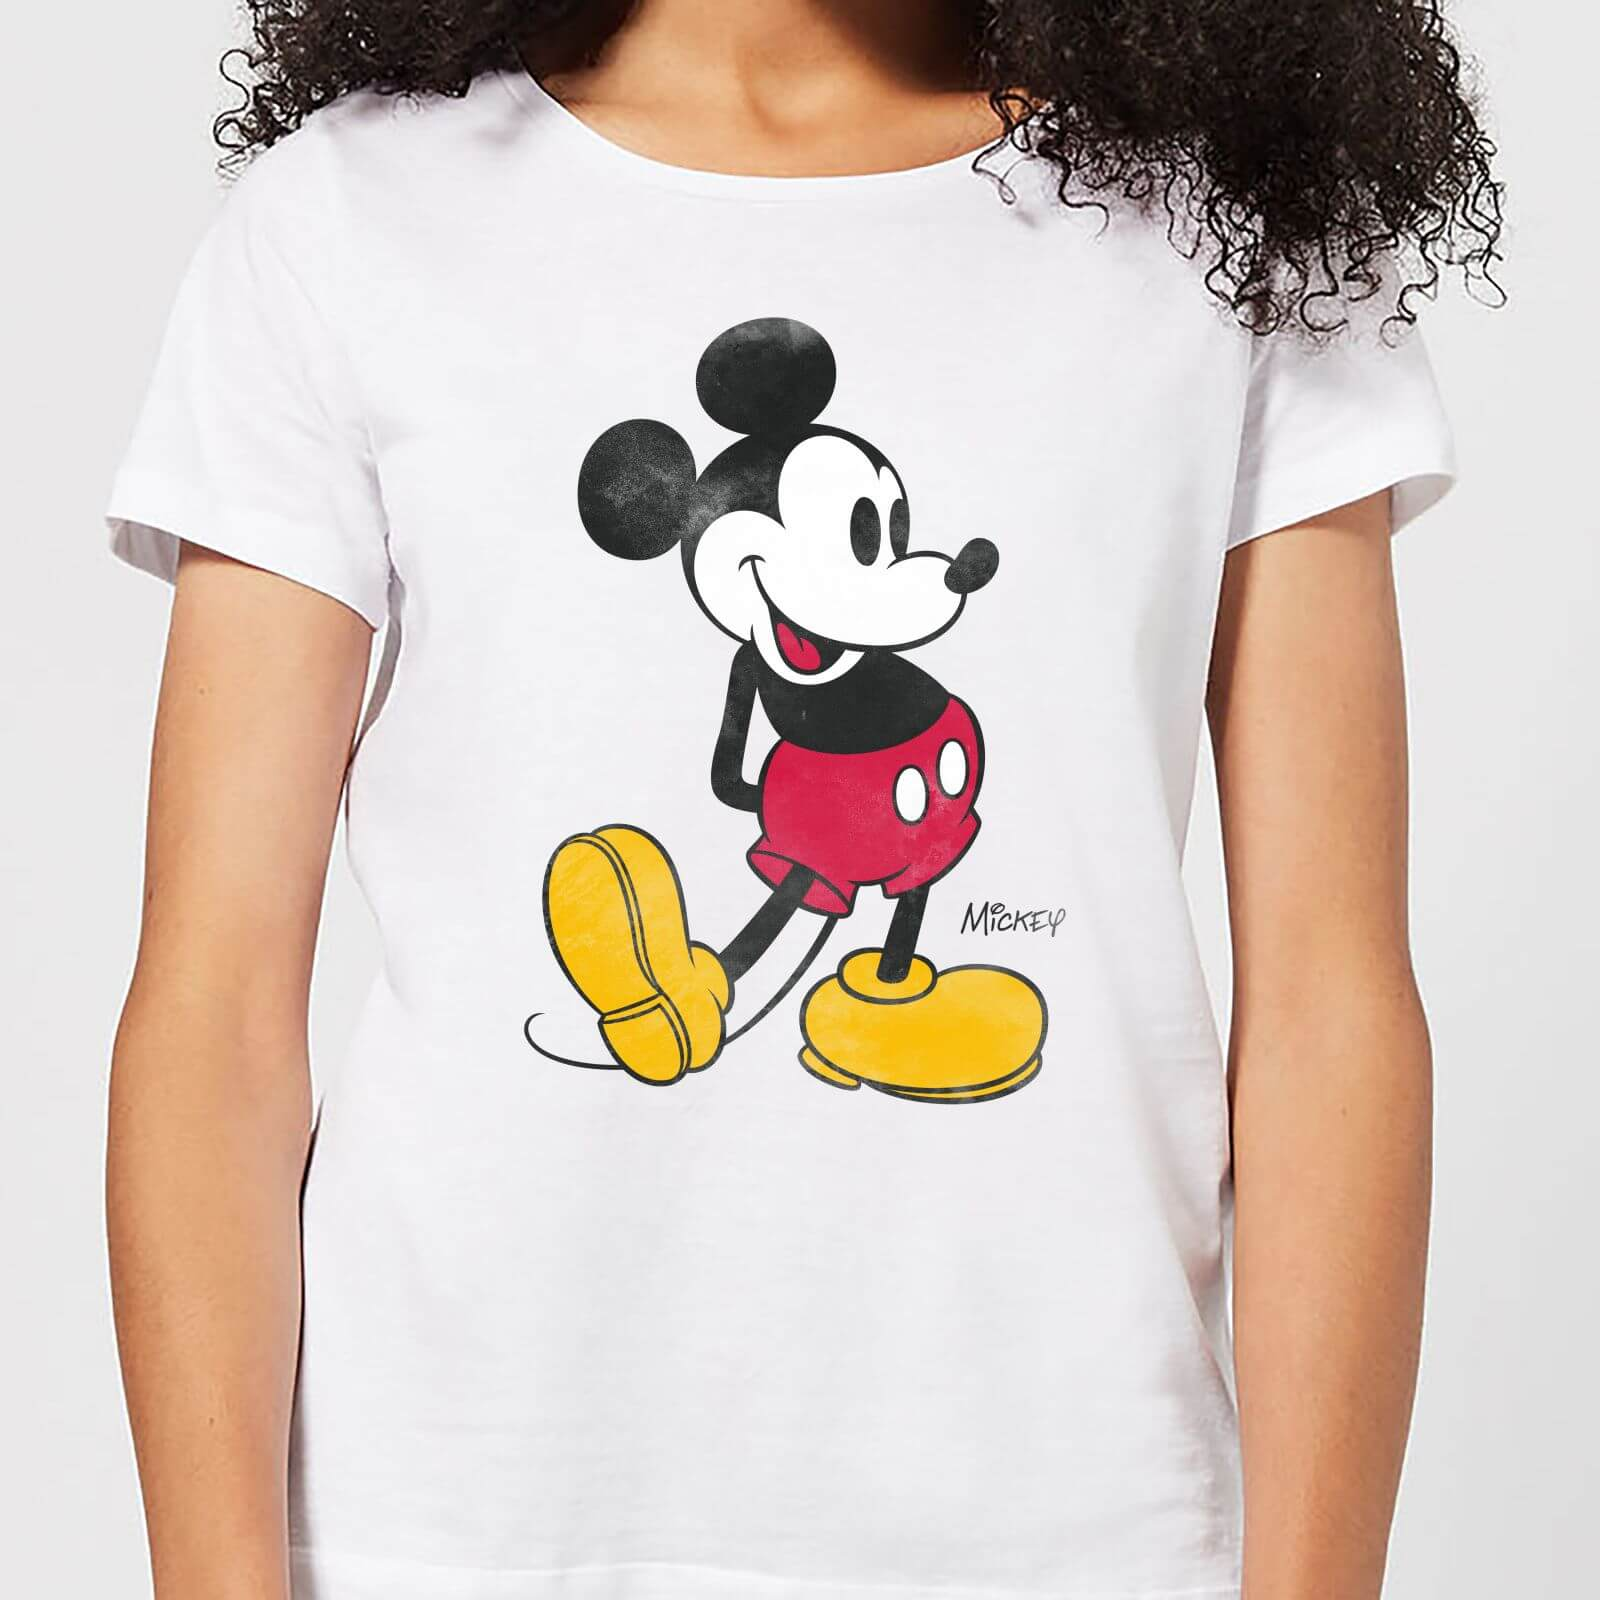 54f20954 Disney Mickey Mouse Classic Kick Women's T-Shirt - White Clothing | Zavvi